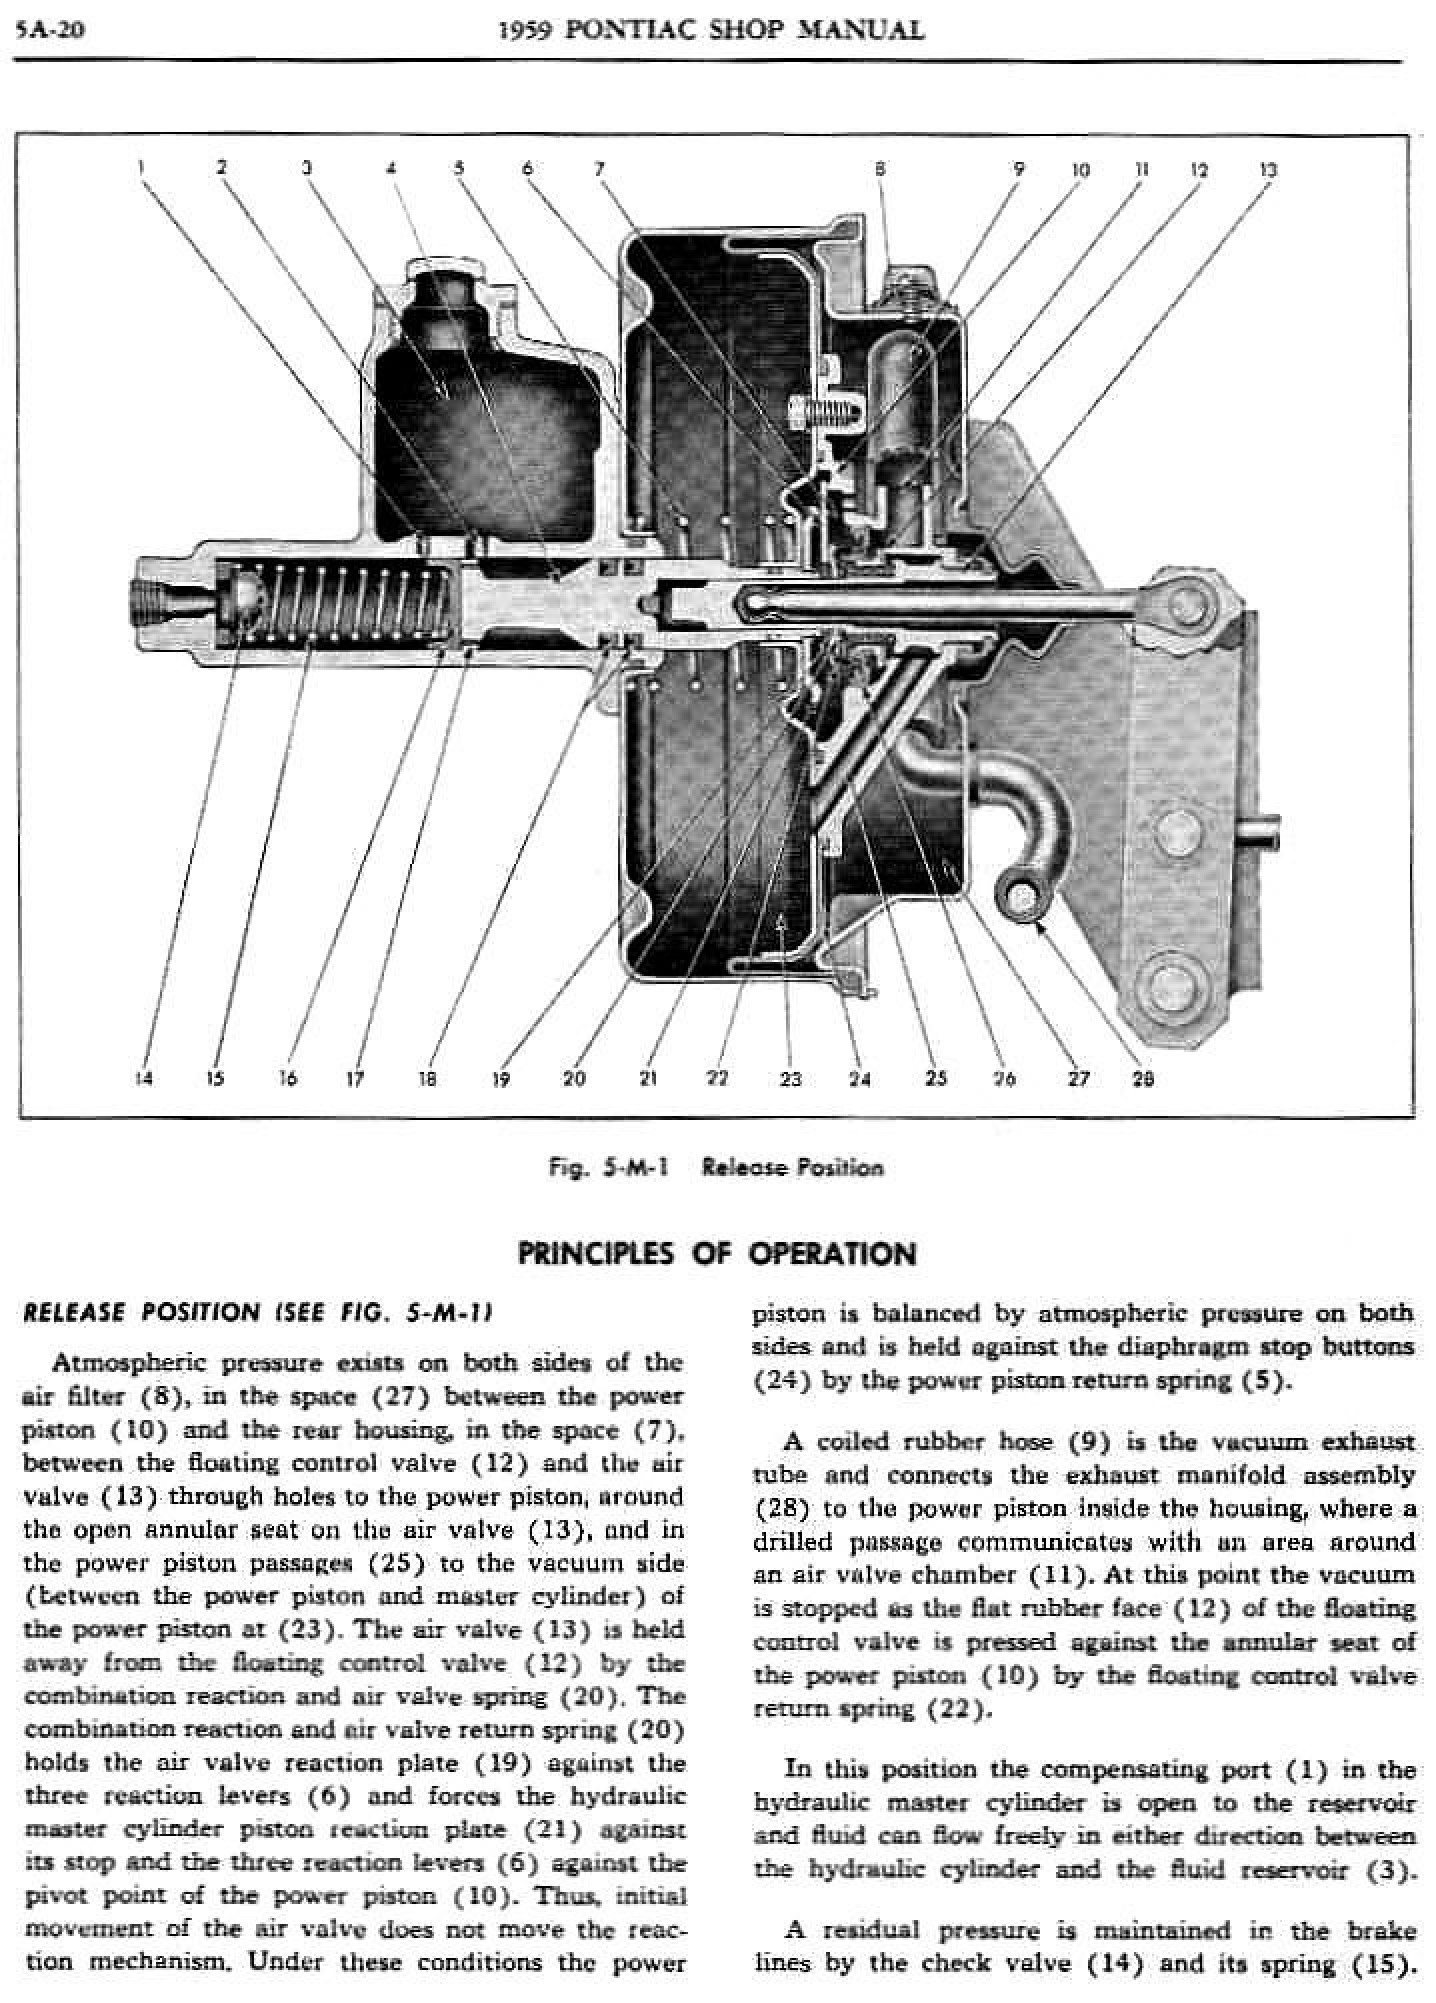 1959 Pontiac Shop Manual- Power Brakes Page 19 of 33